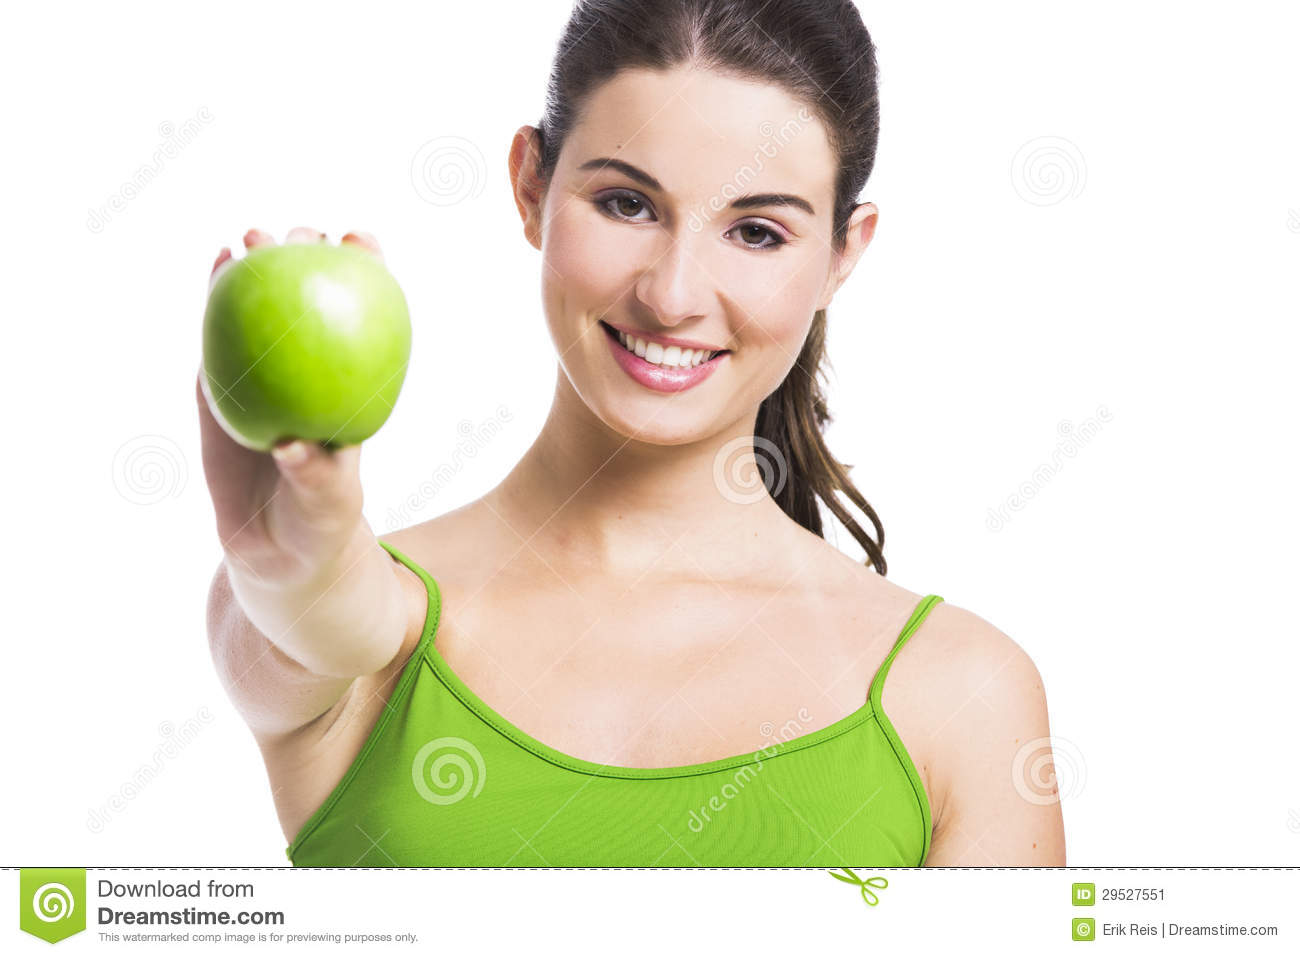 healthy-woman-green-apple-29527551.jpg